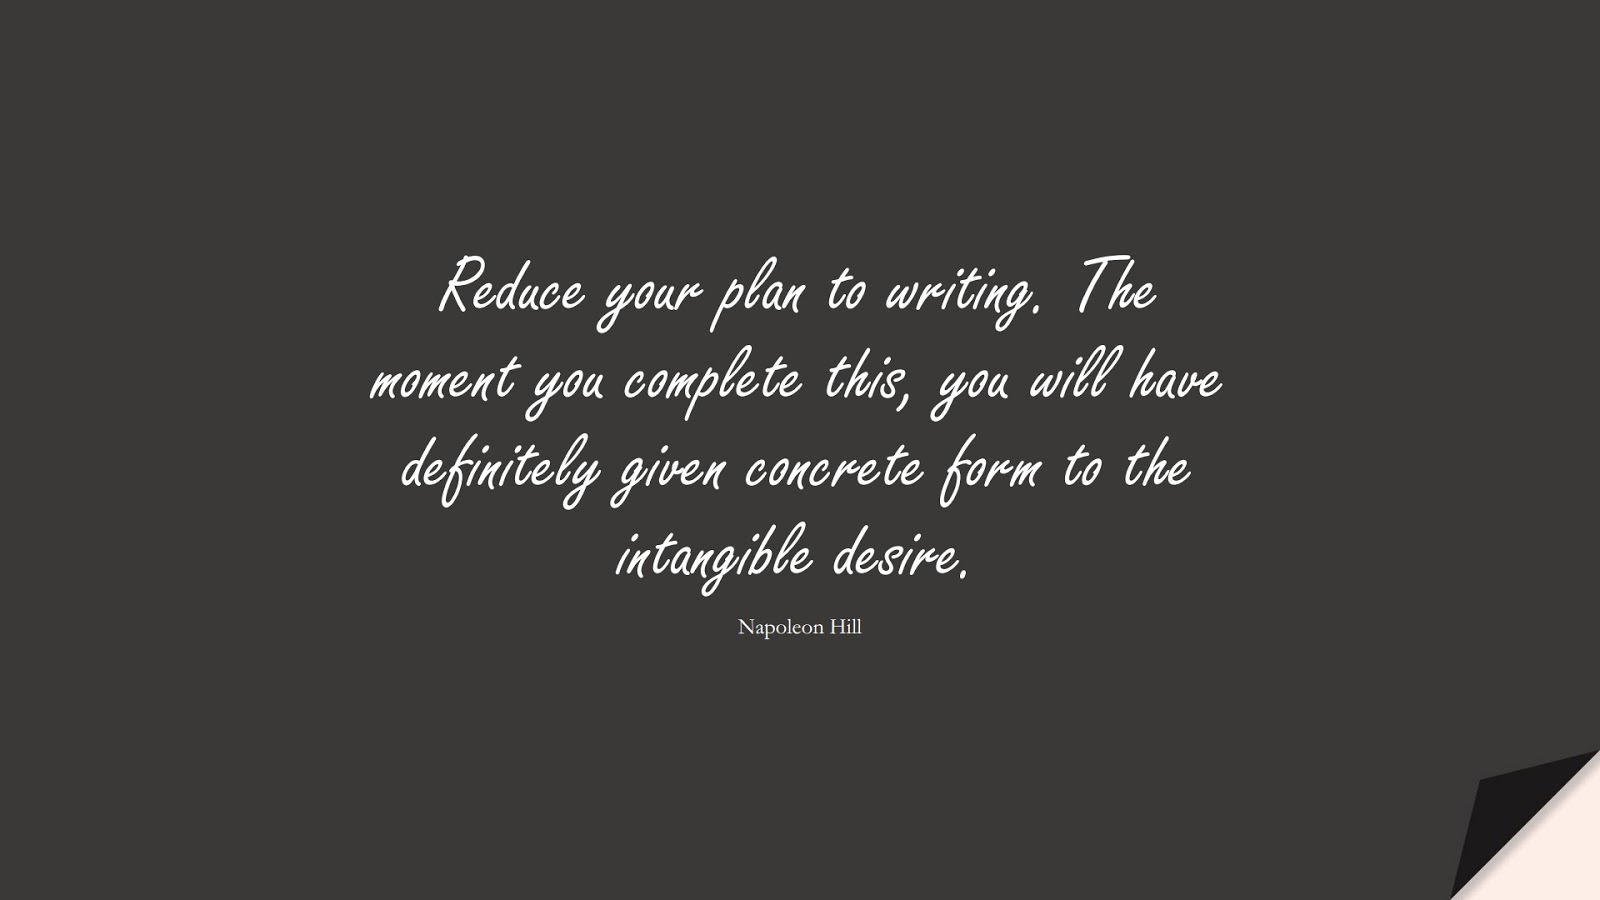 Reduce your plan to writing. The moment you complete this, you will have definitely given concrete form to the intangible desire. (Napoleon Hill);  #InspirationalQuotes